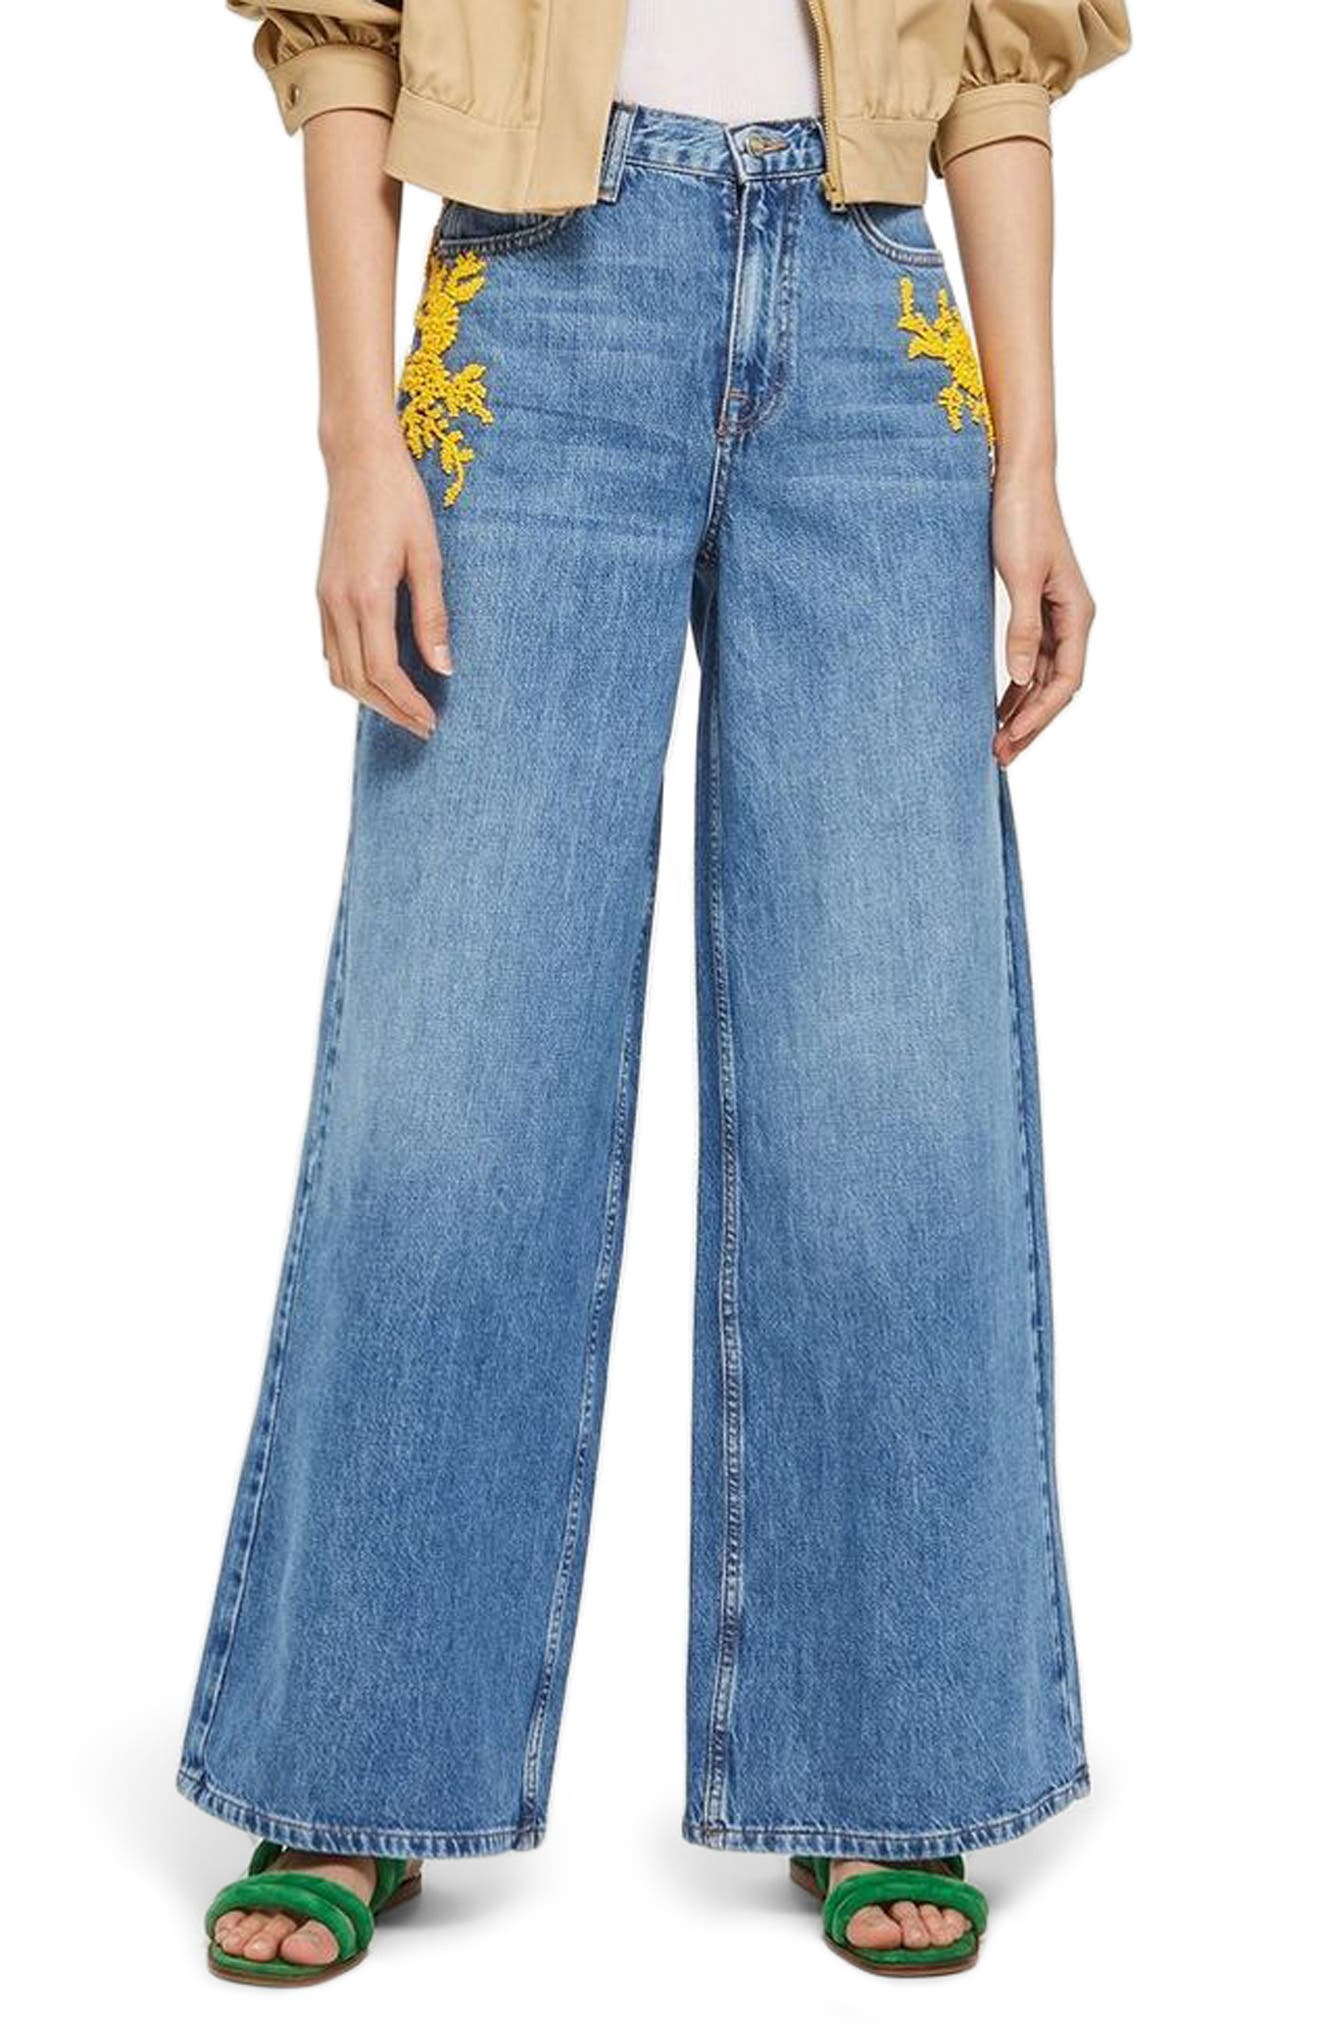 Topshop MOTO Bead Detail Wide Leg Non-Stretch Jeans